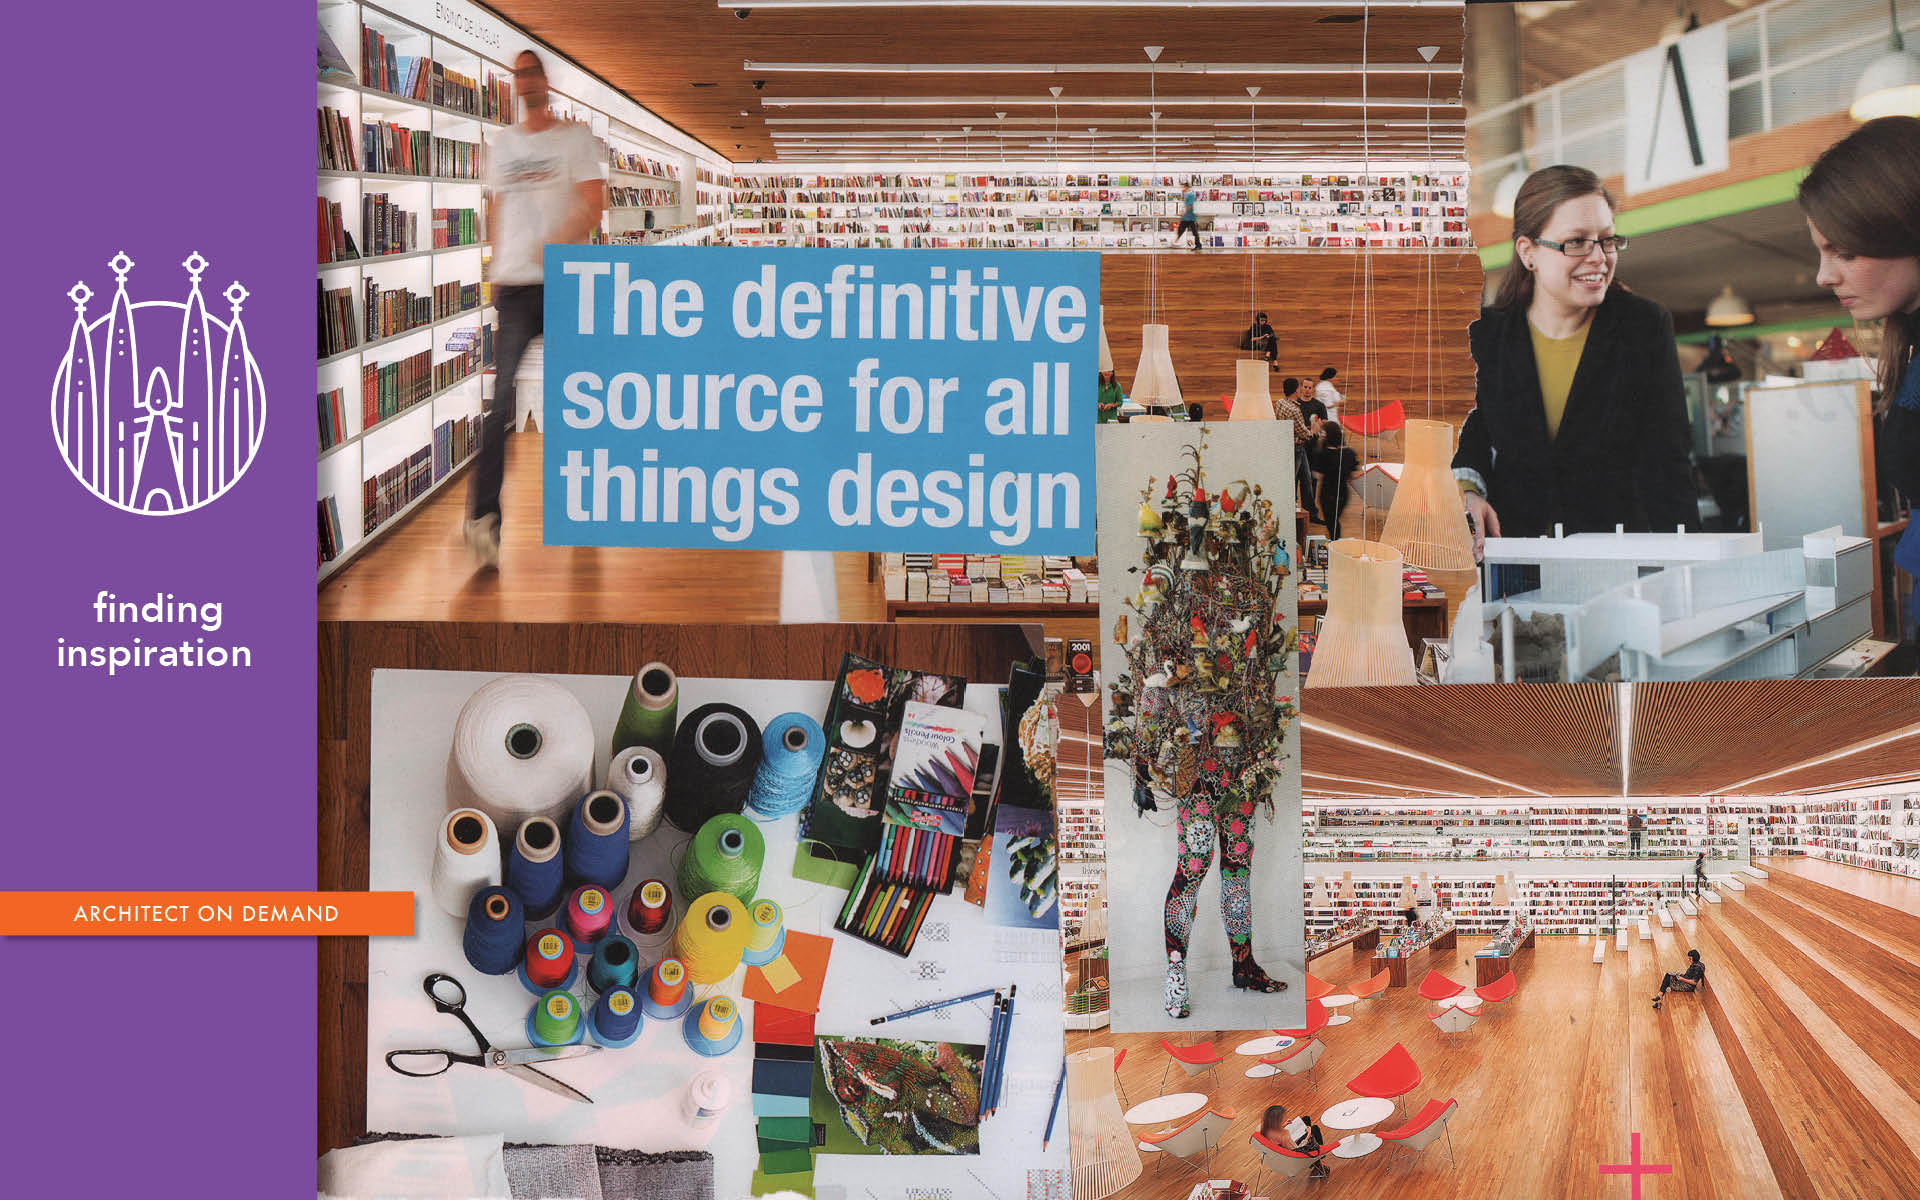 home depot, creative hub, architect on demand, advice without strings